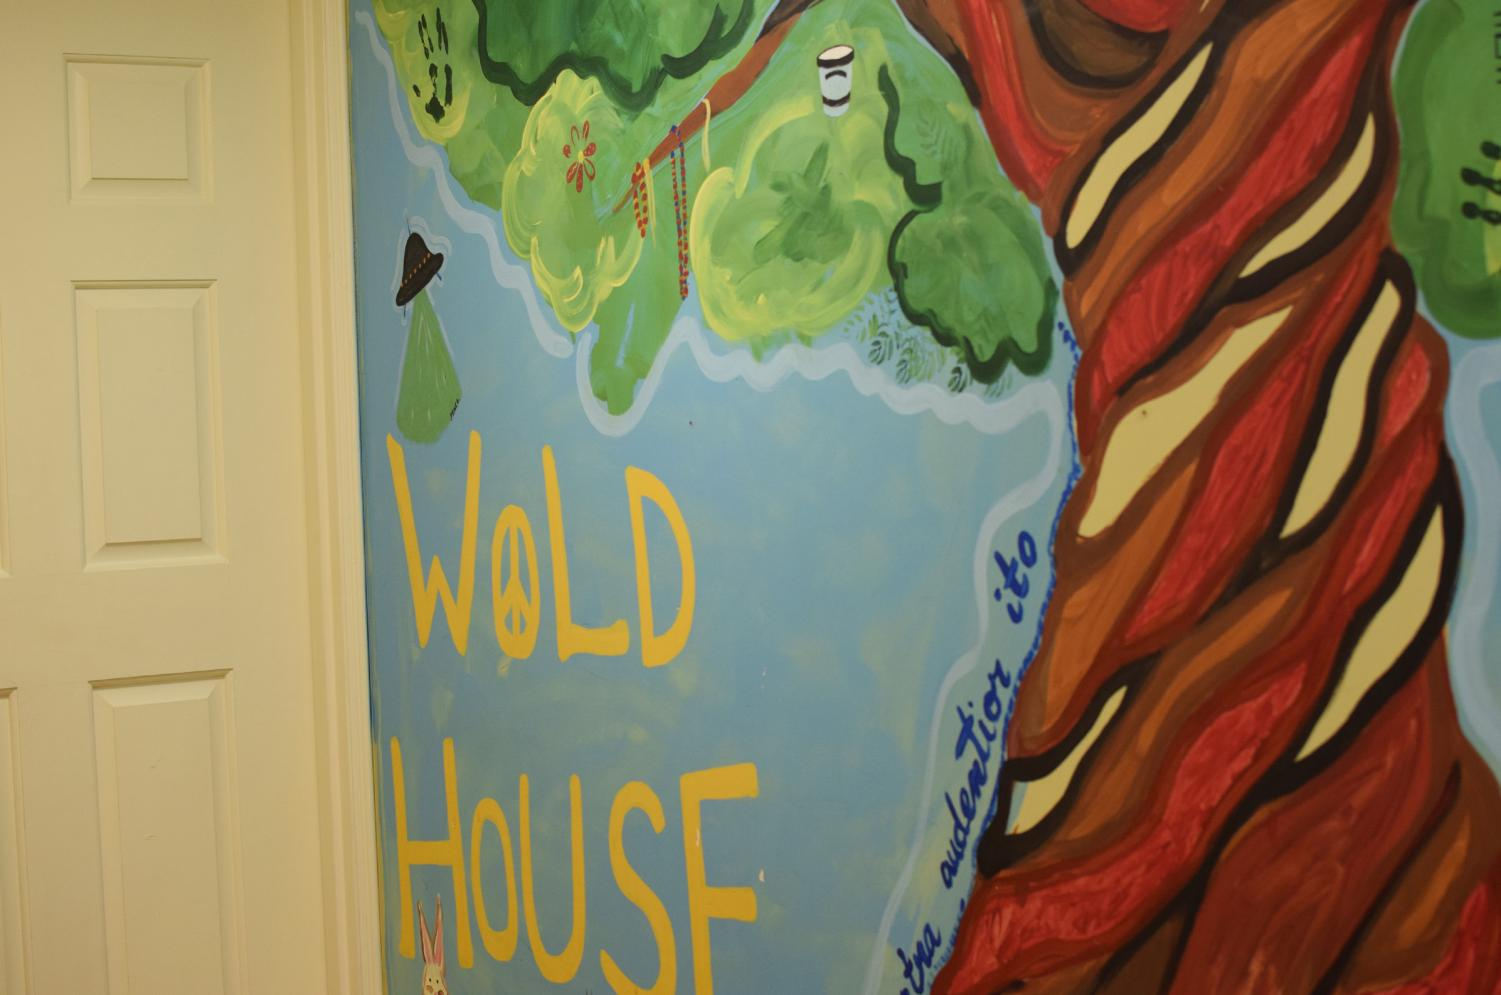 Wold art displayed at Wold Minerva House. Photo by Alex Appel.